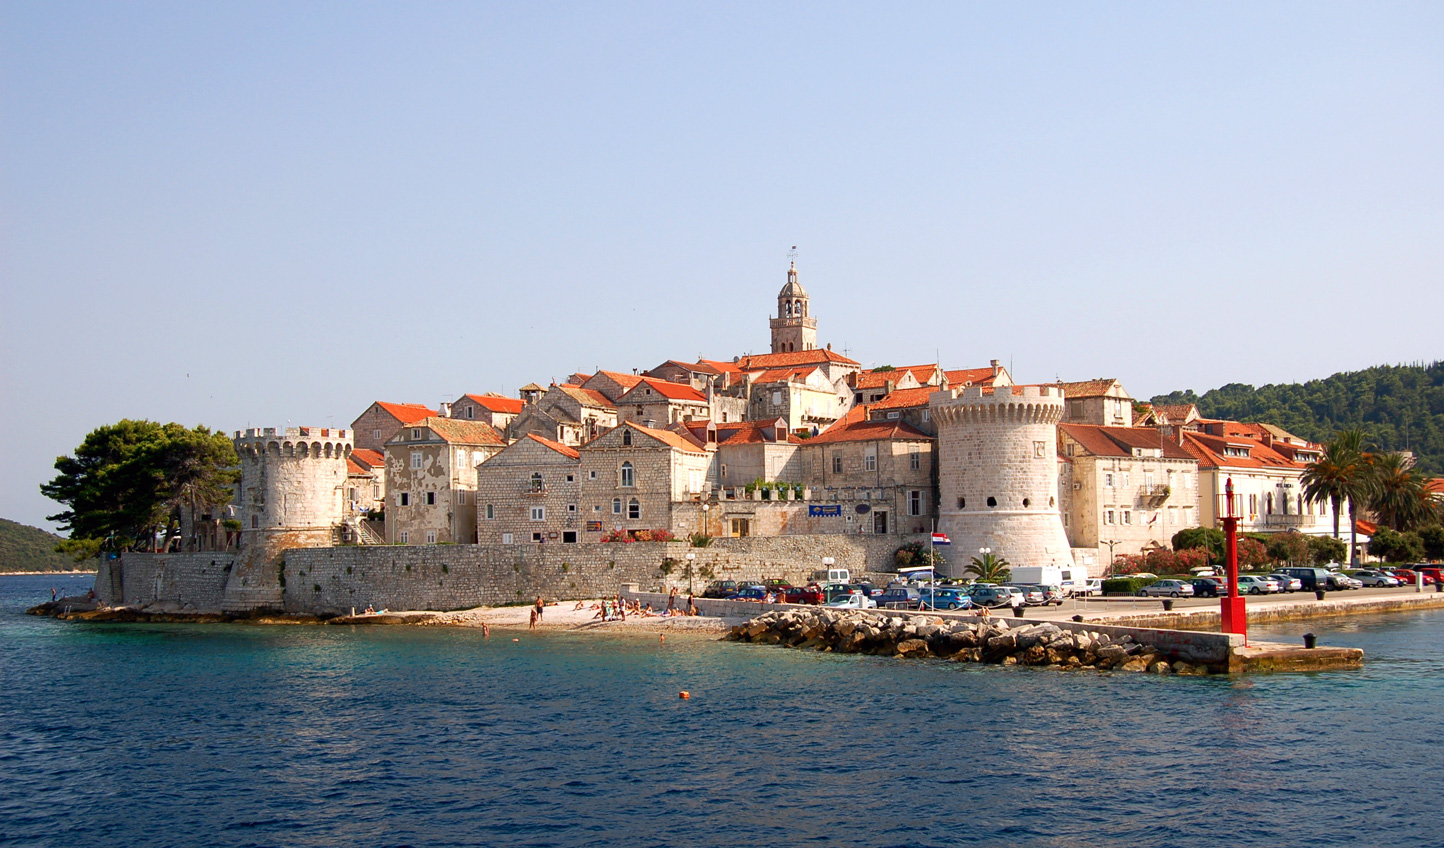 Old world charm in Korcula